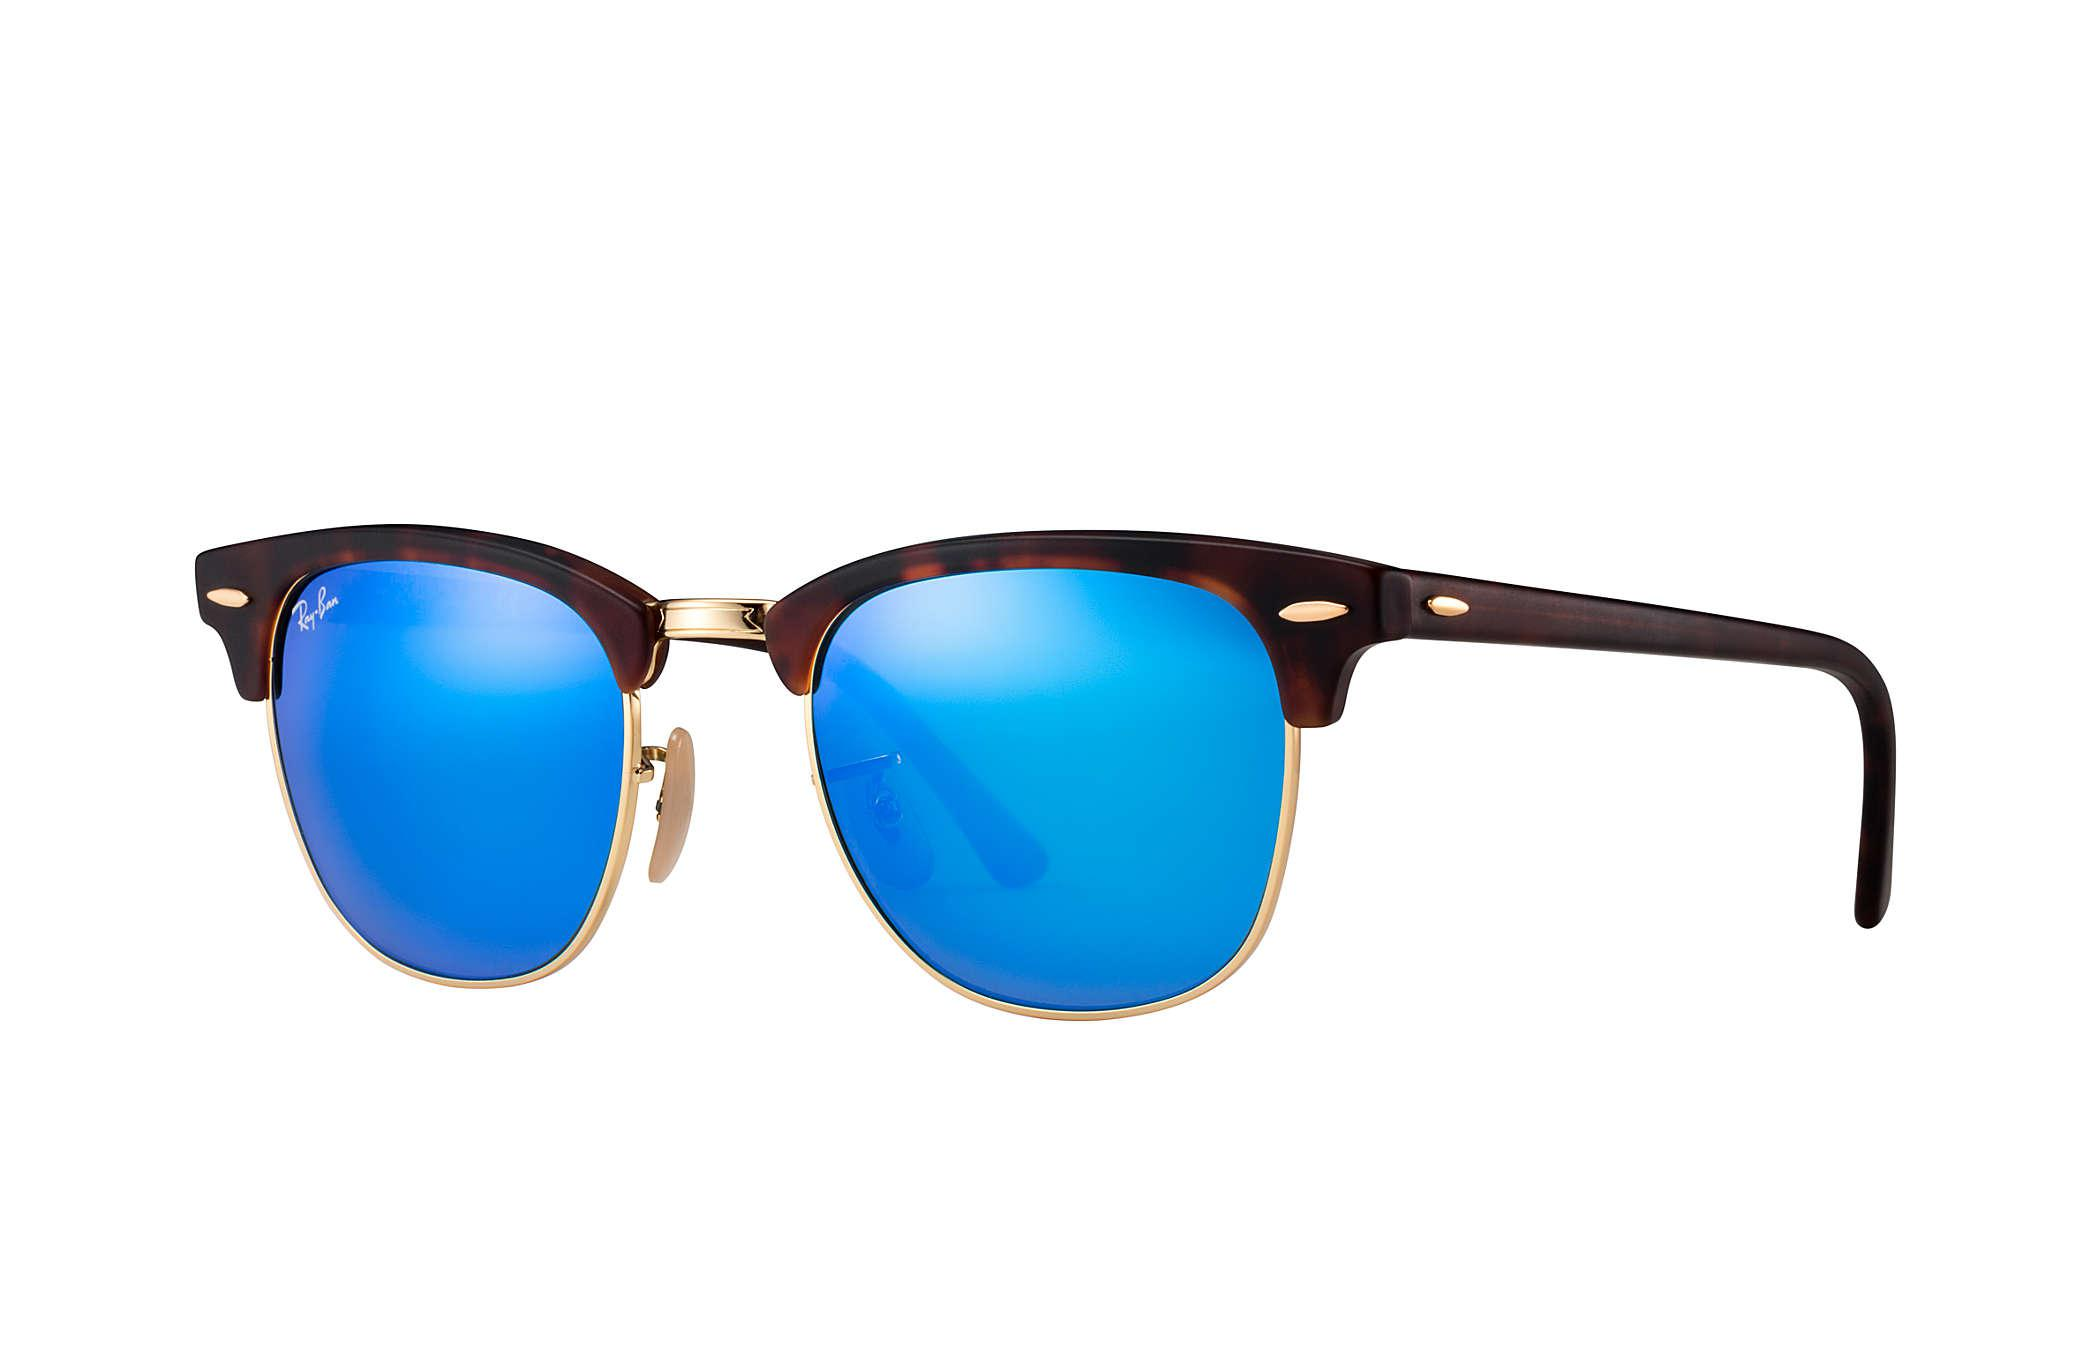 5b1c2d89cb Lyst - Ray-Ban Clubmaster Flash Lenses in Blue